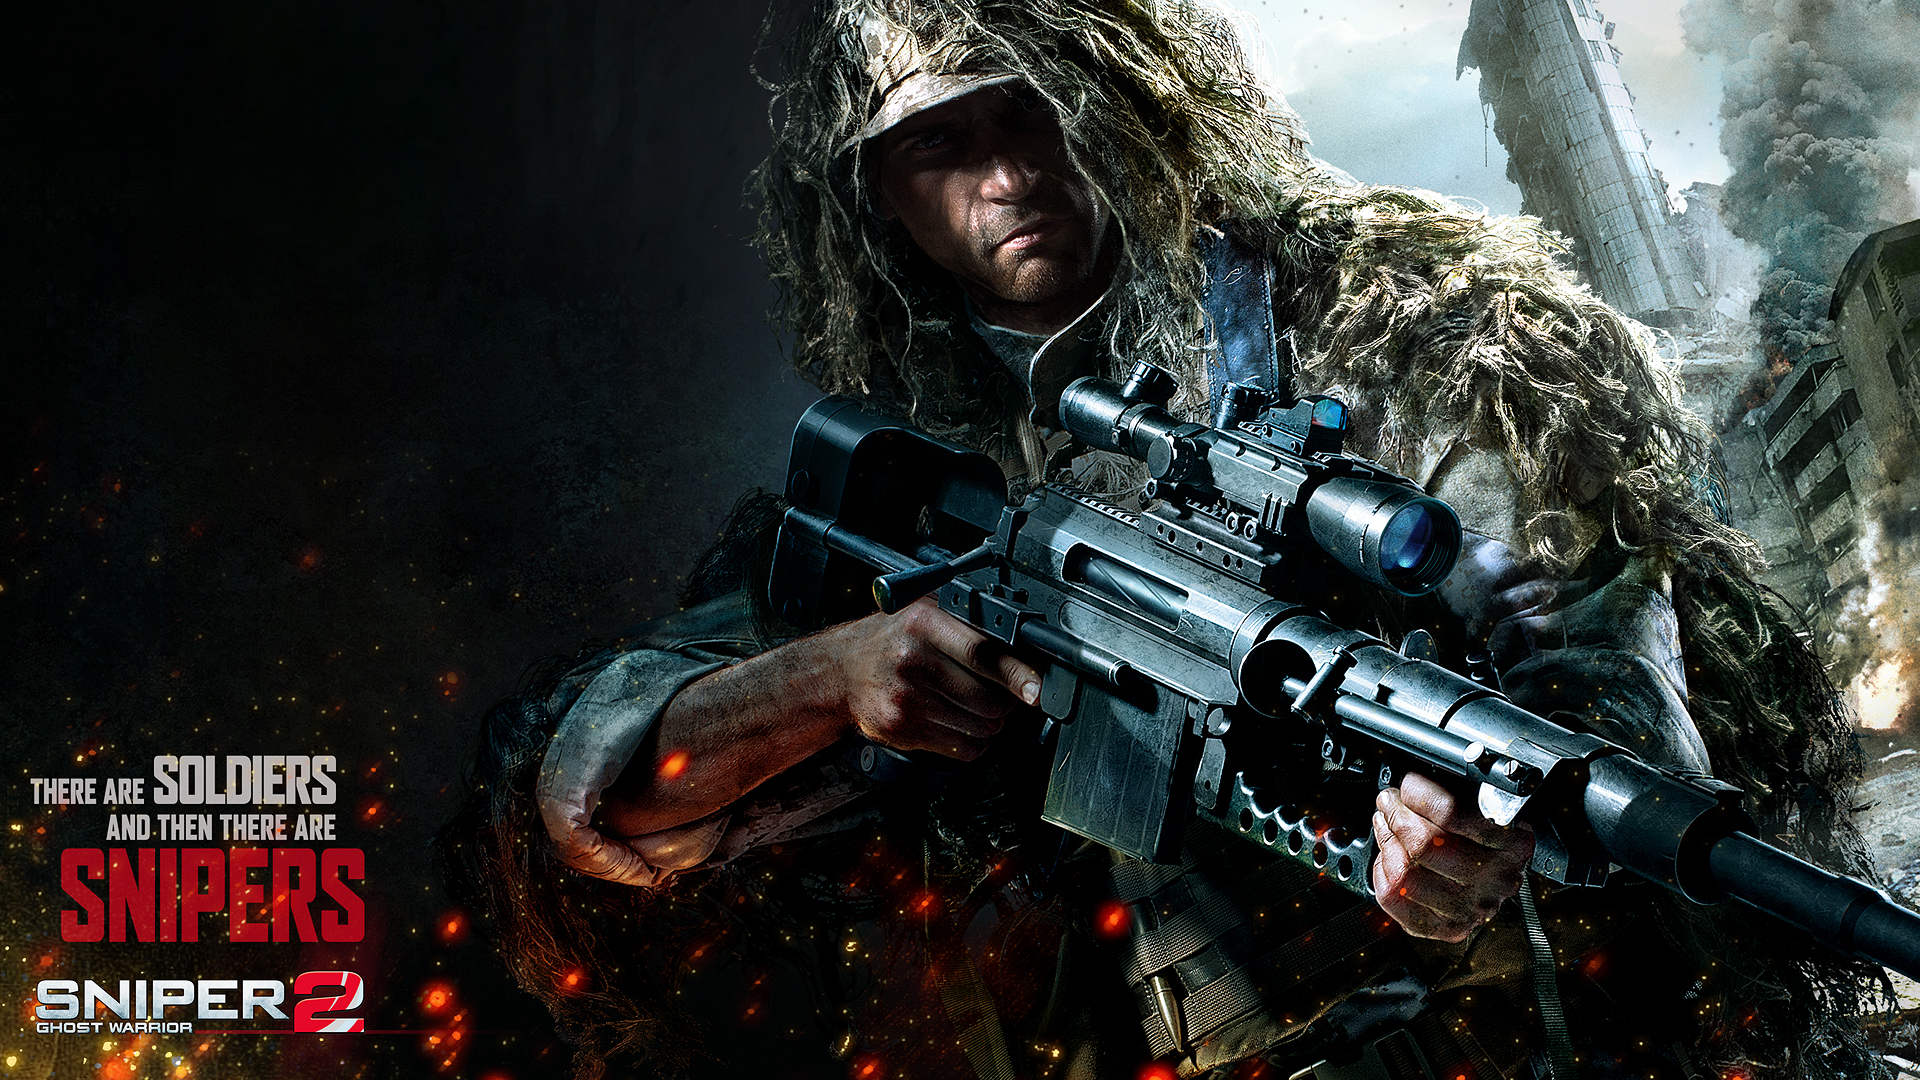 Sniper Ghost Warrior 2 wallpaper 3